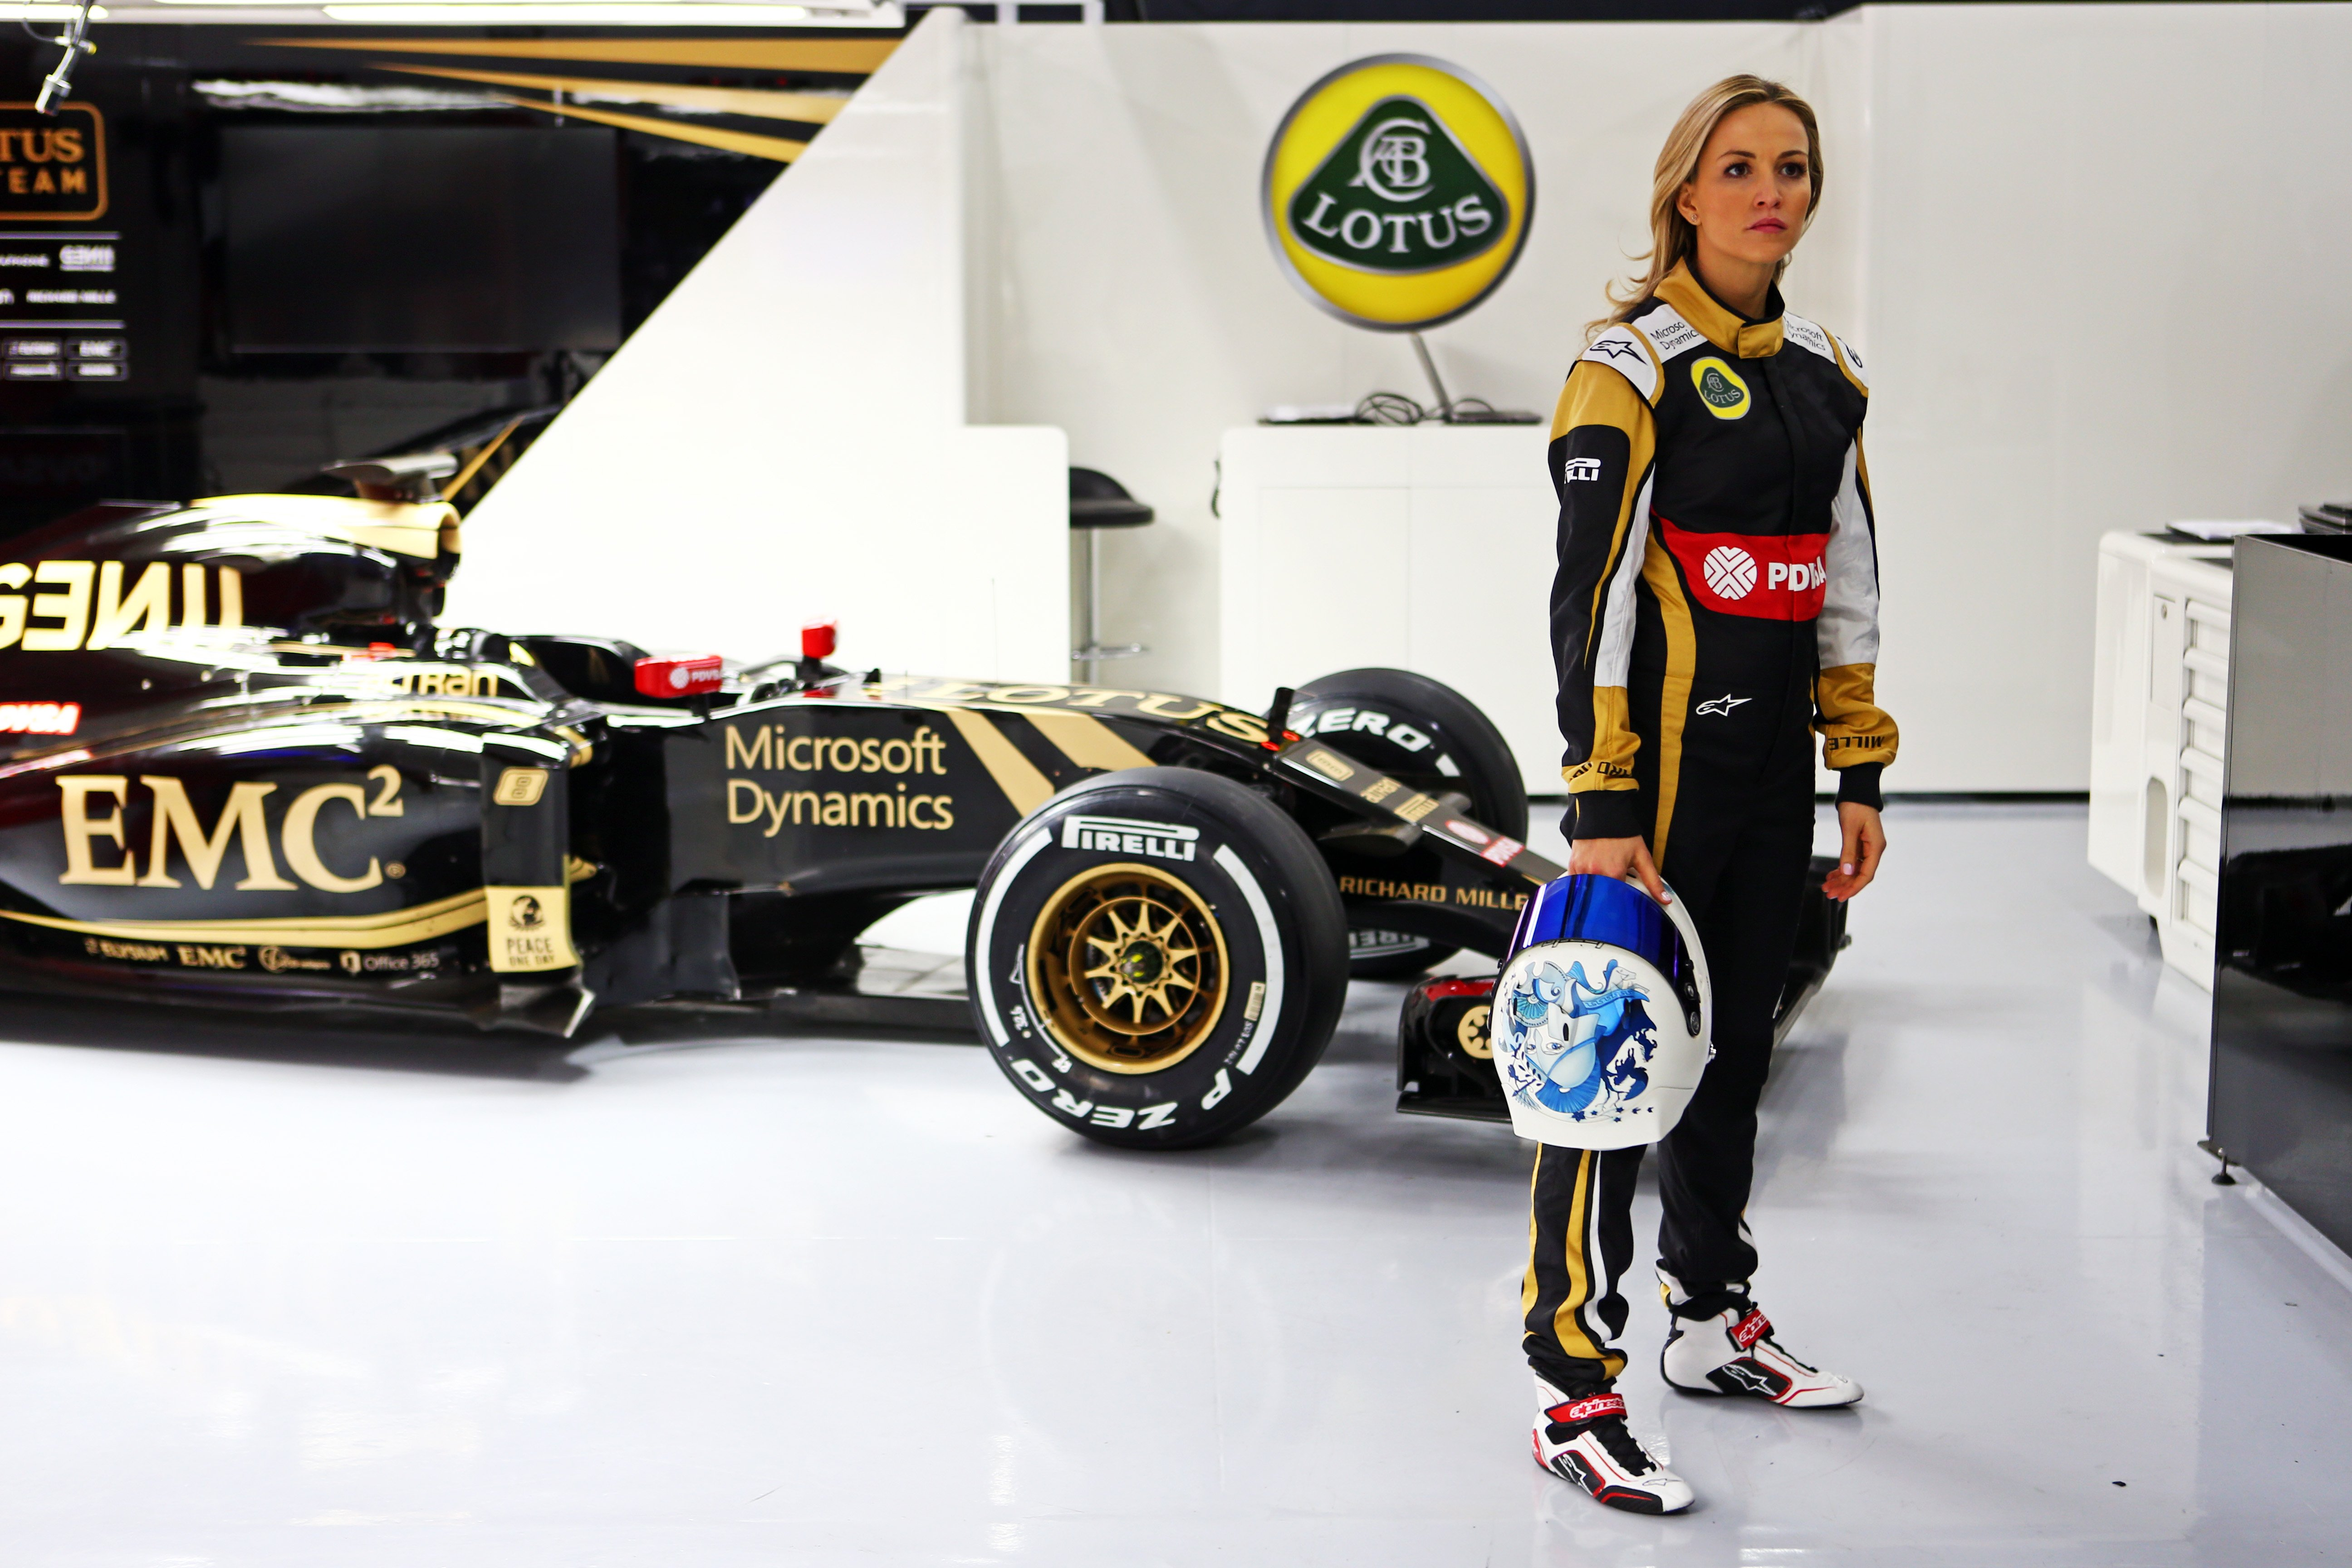 Renault Koleos 2019 >> Lotus Formula One team appoints female driver - photos | CarAdvice